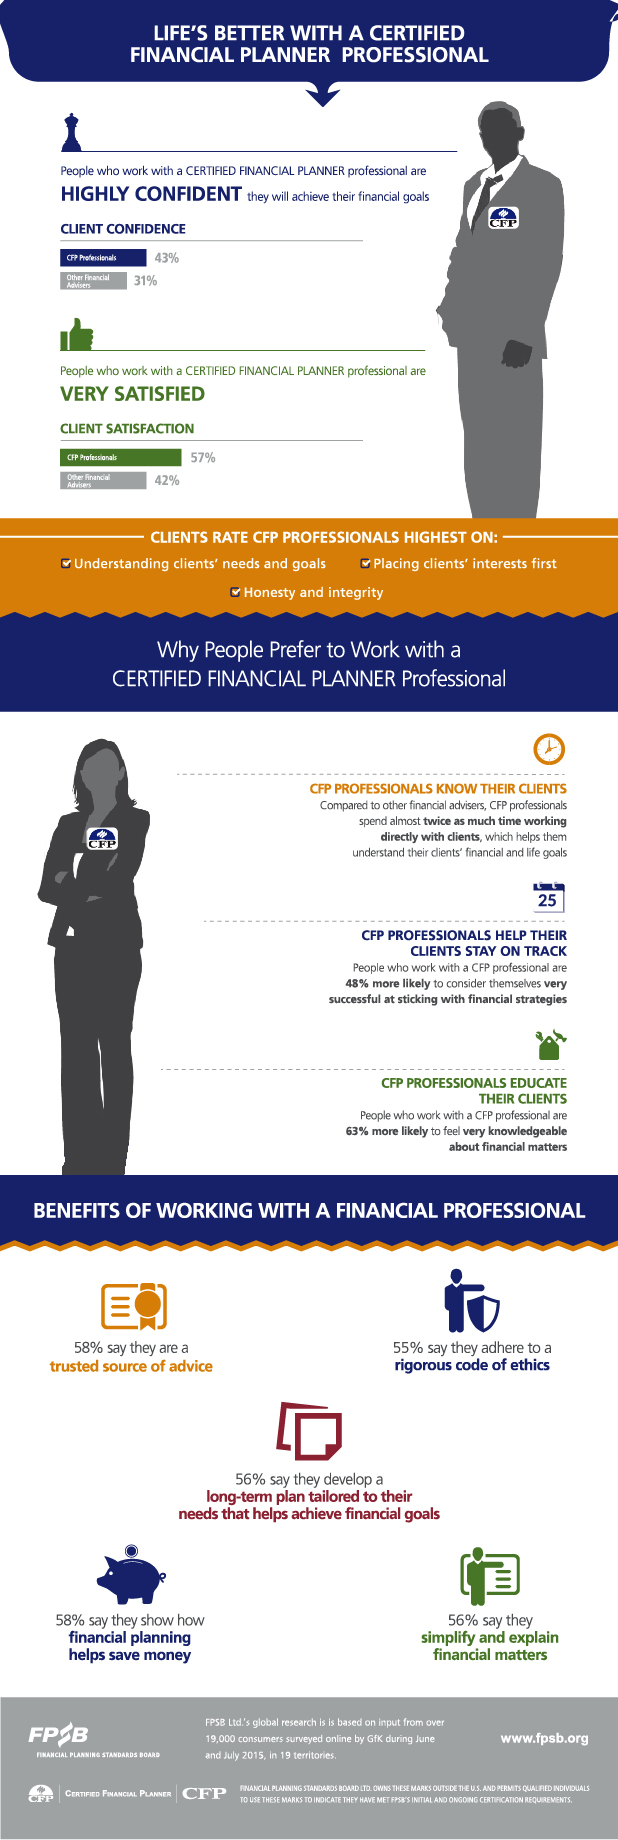 Benefits Of Cfp Certifications For The Public Fpsb